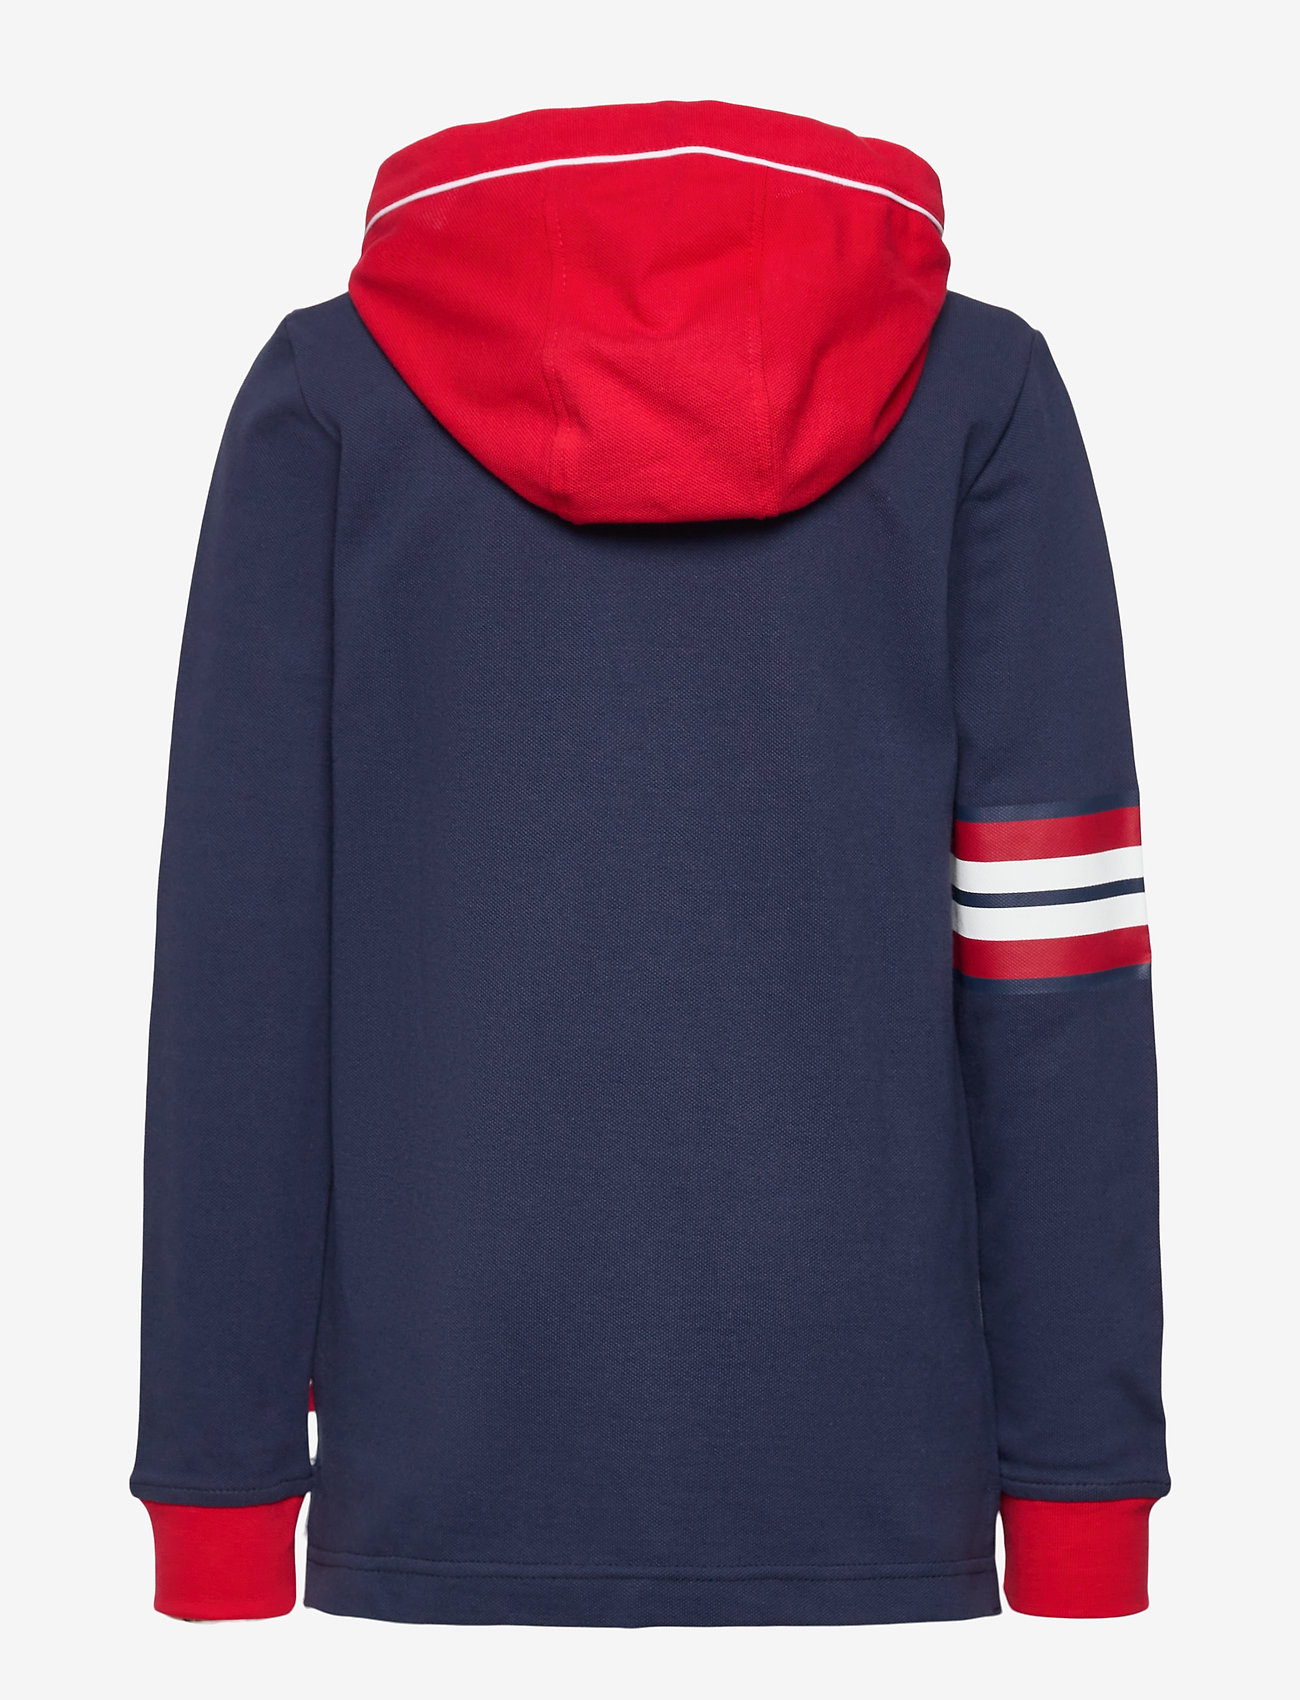 Levi's - LVB LS PIPED HOODED HENLEY - kapuzenpullover - dress blues - 1